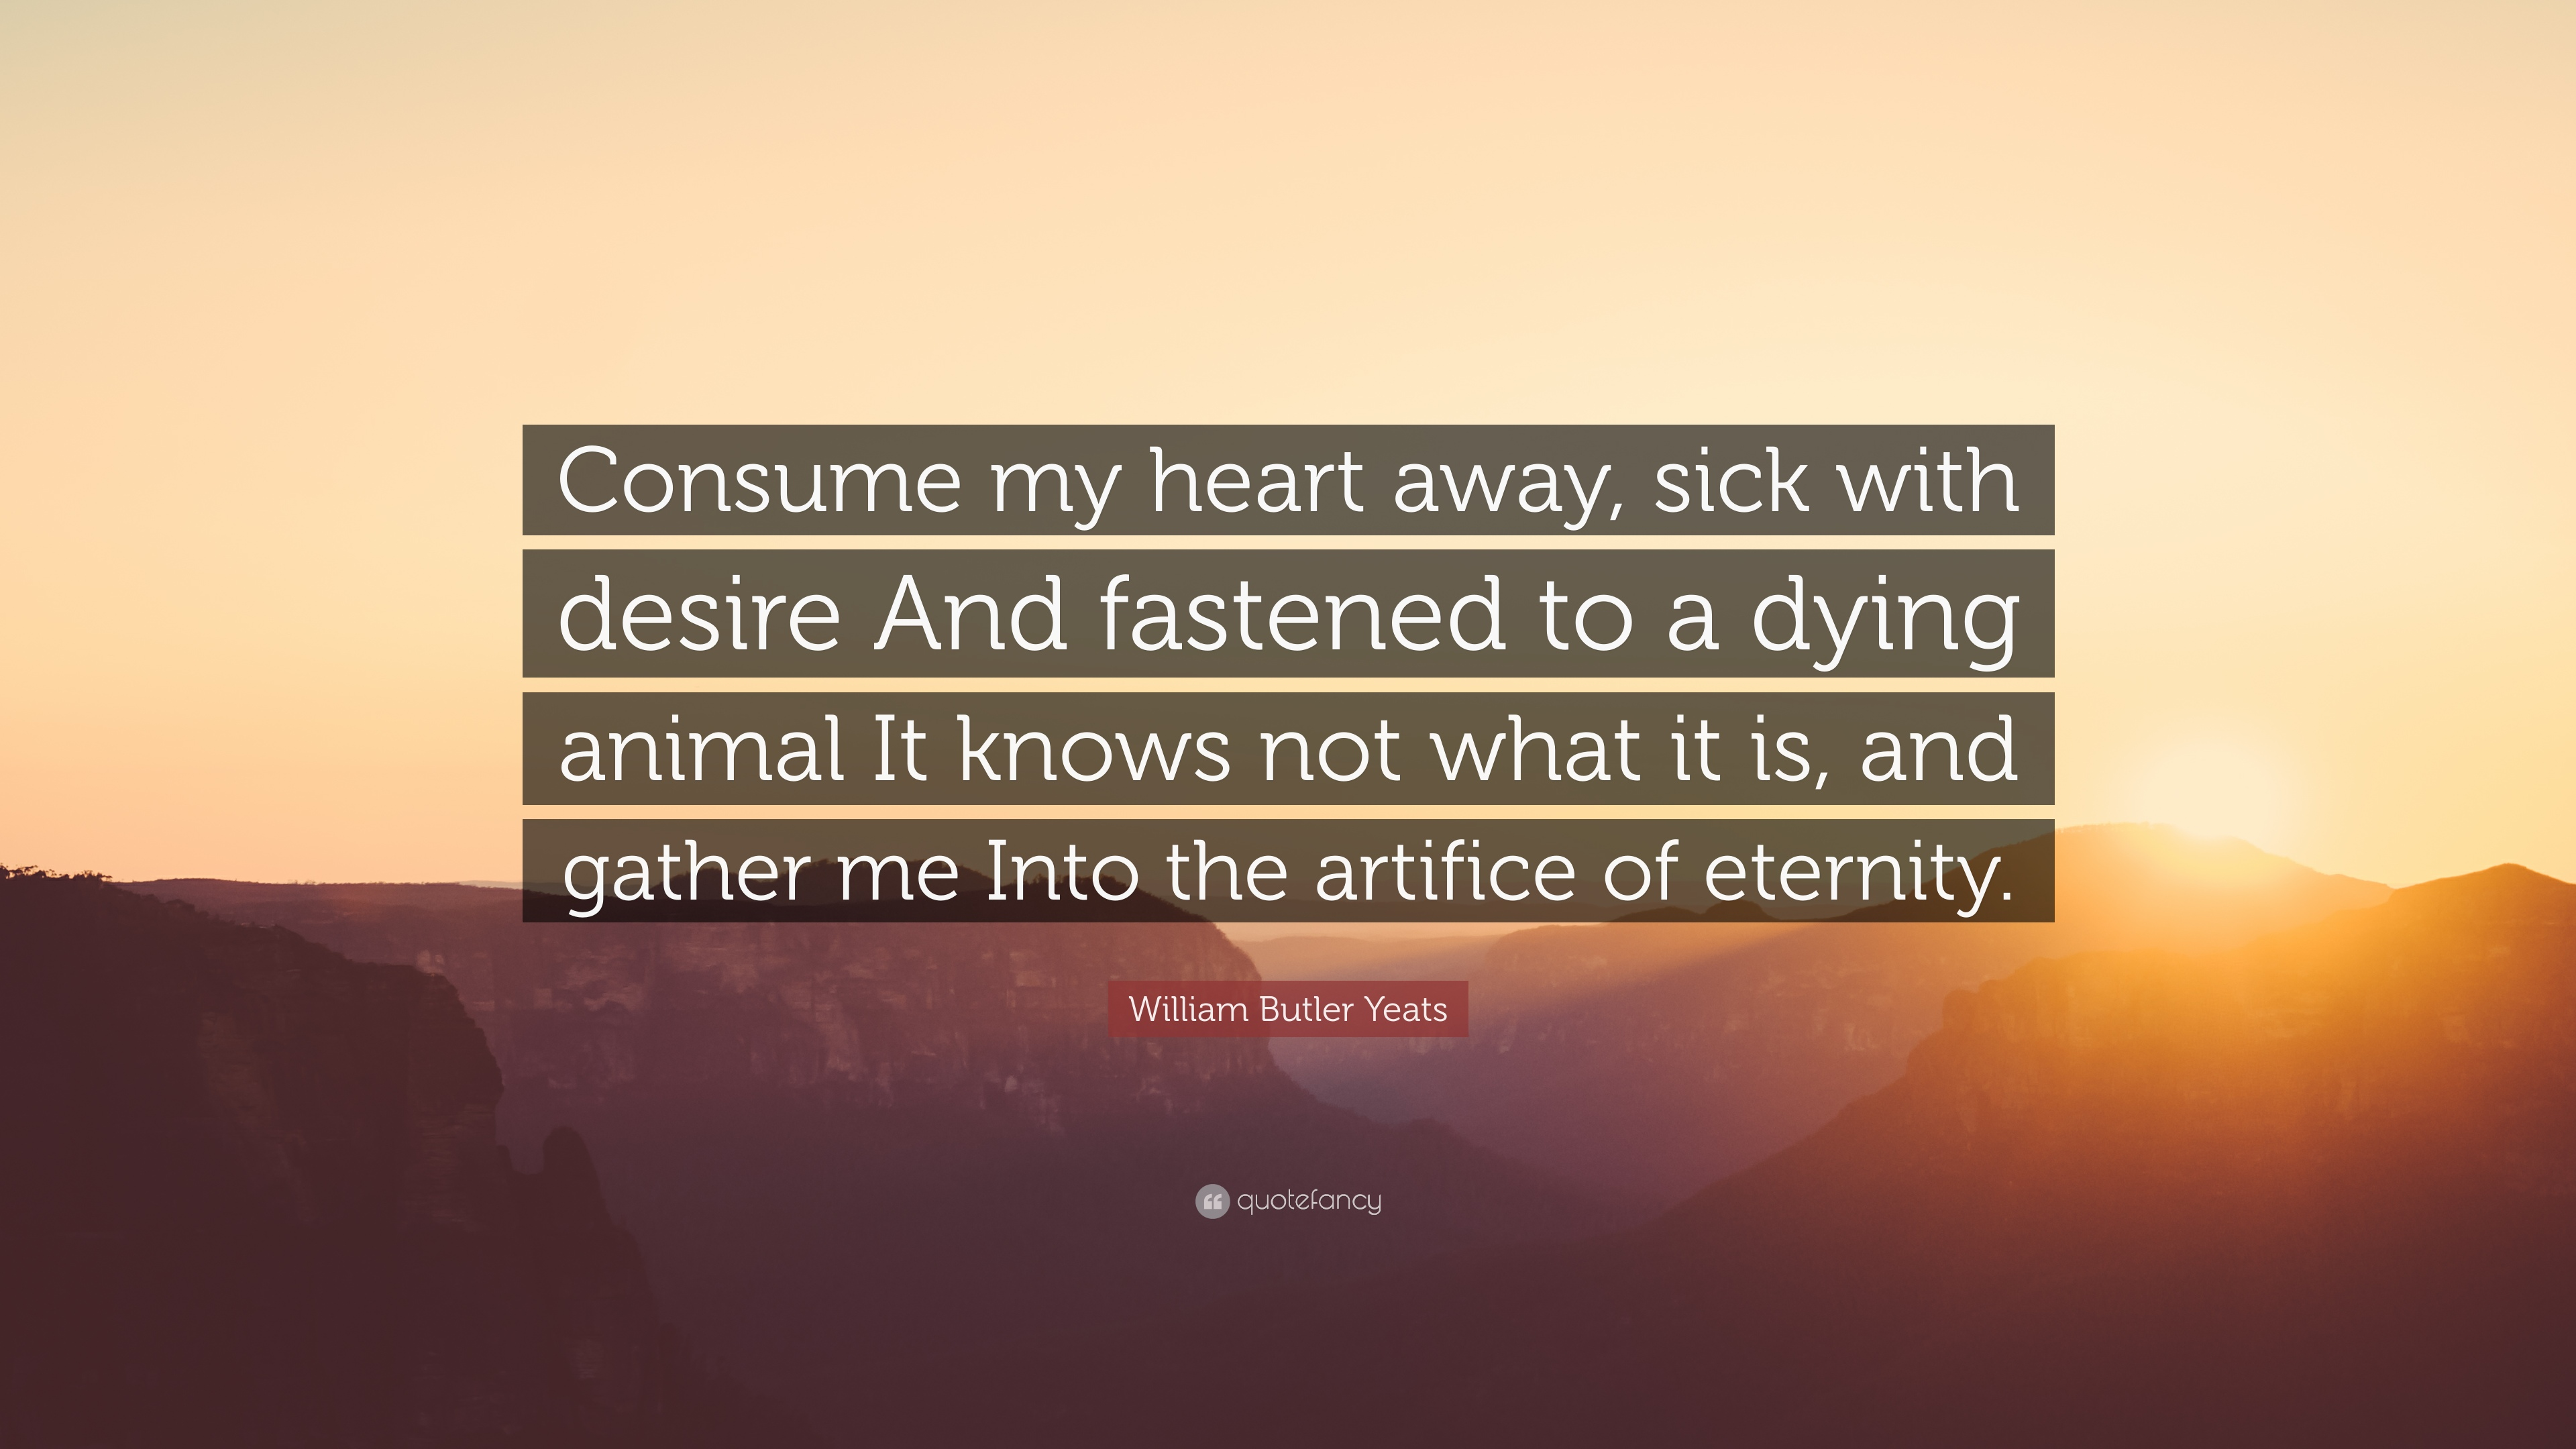 William Butler Yeats Quote Consume My Heart Away Sick With Desire